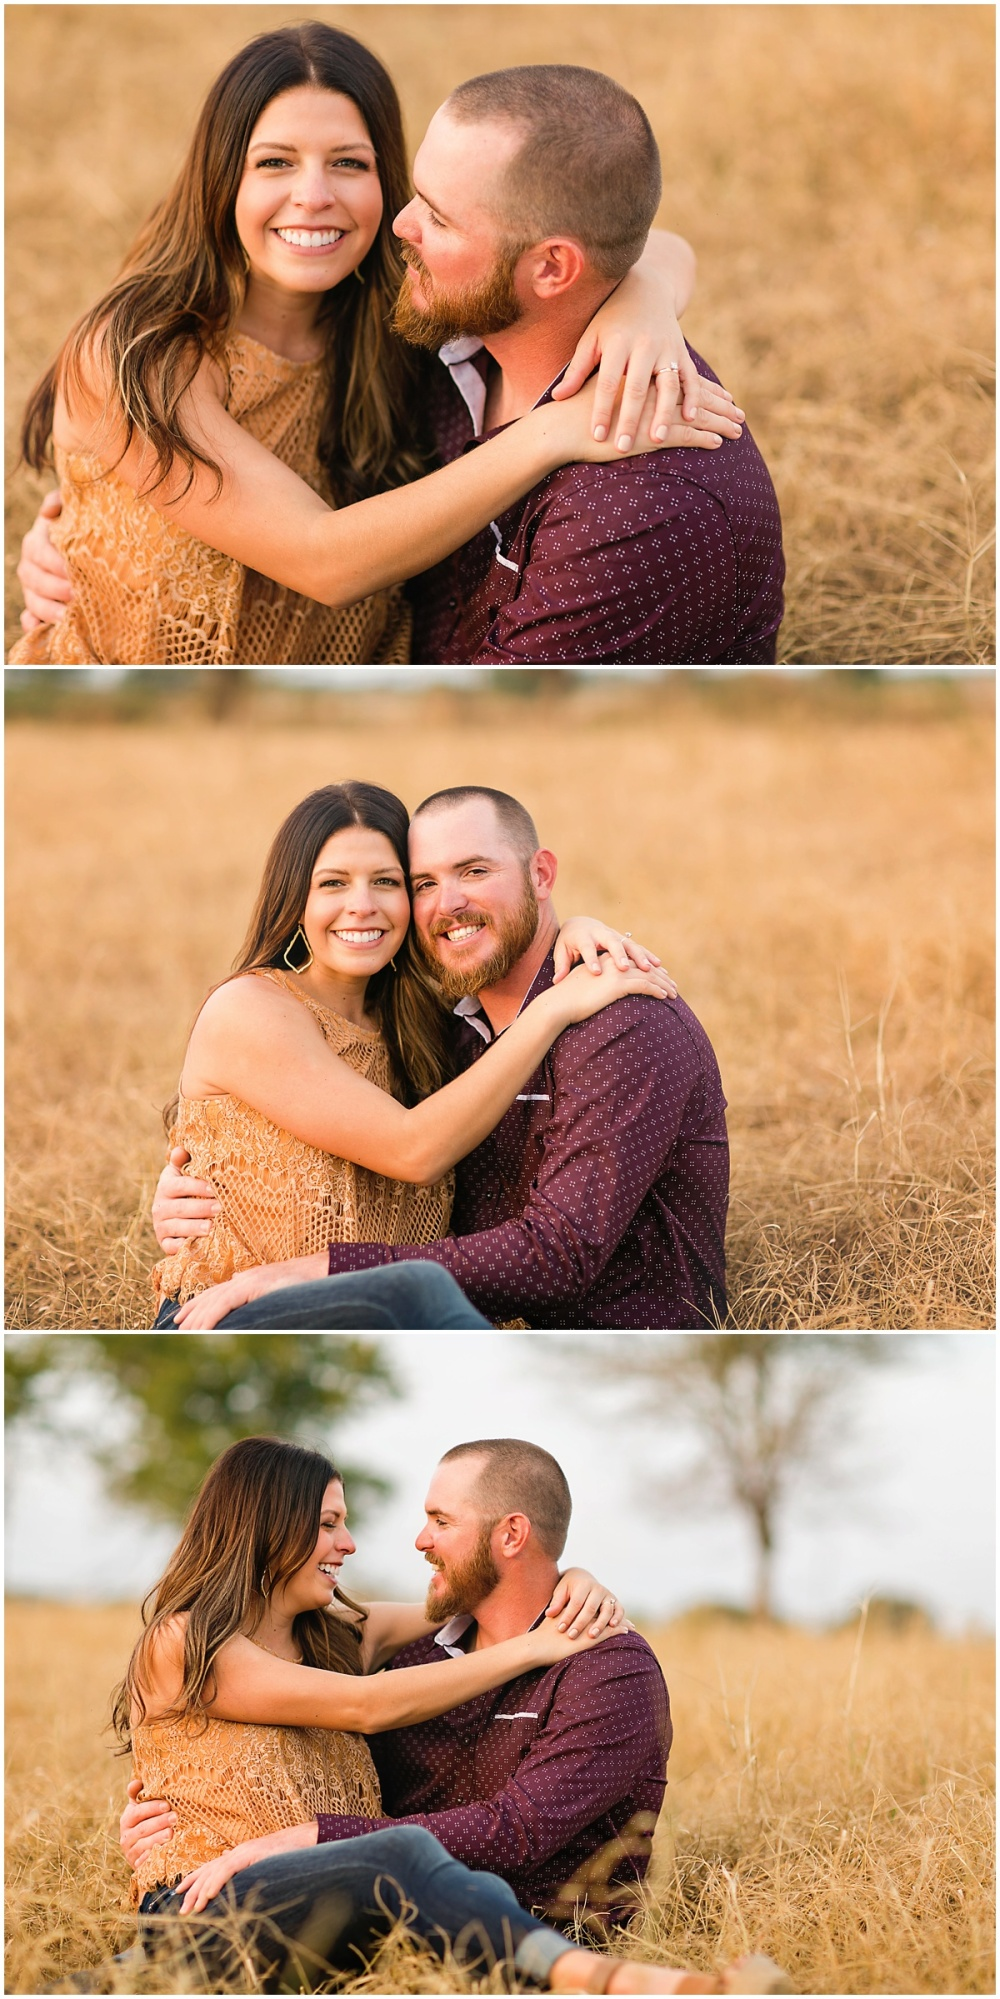 Family-Children-Maternity-Portraits-San-Antonio-Hill-Country-Texas-Carly-Barton-Photography_0091.jpg